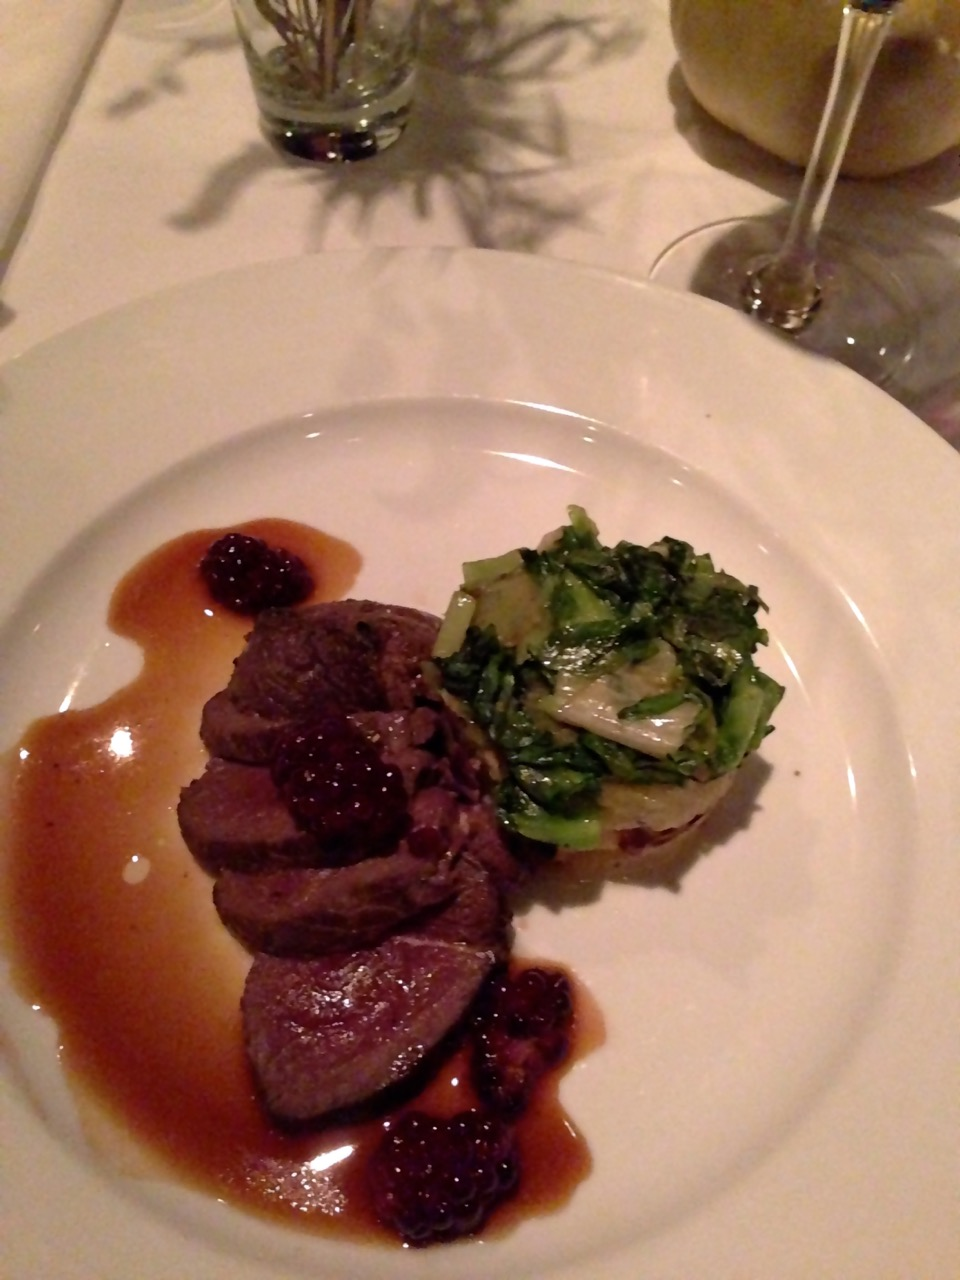 Venison at Watermark by angela roberts